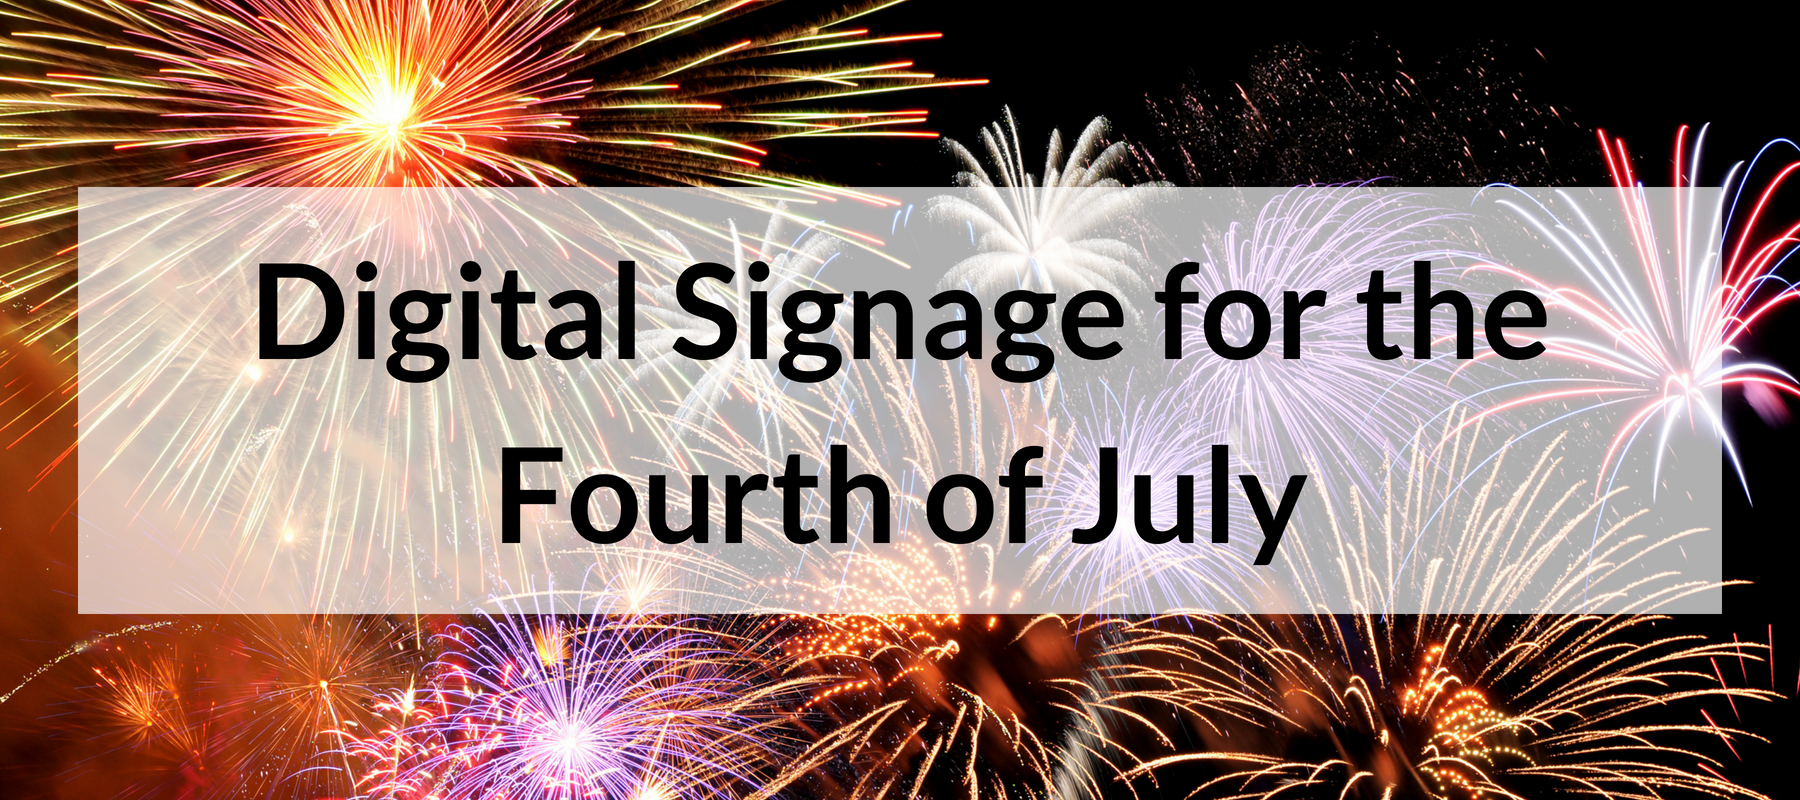 Digital Signage for the Fourth of July